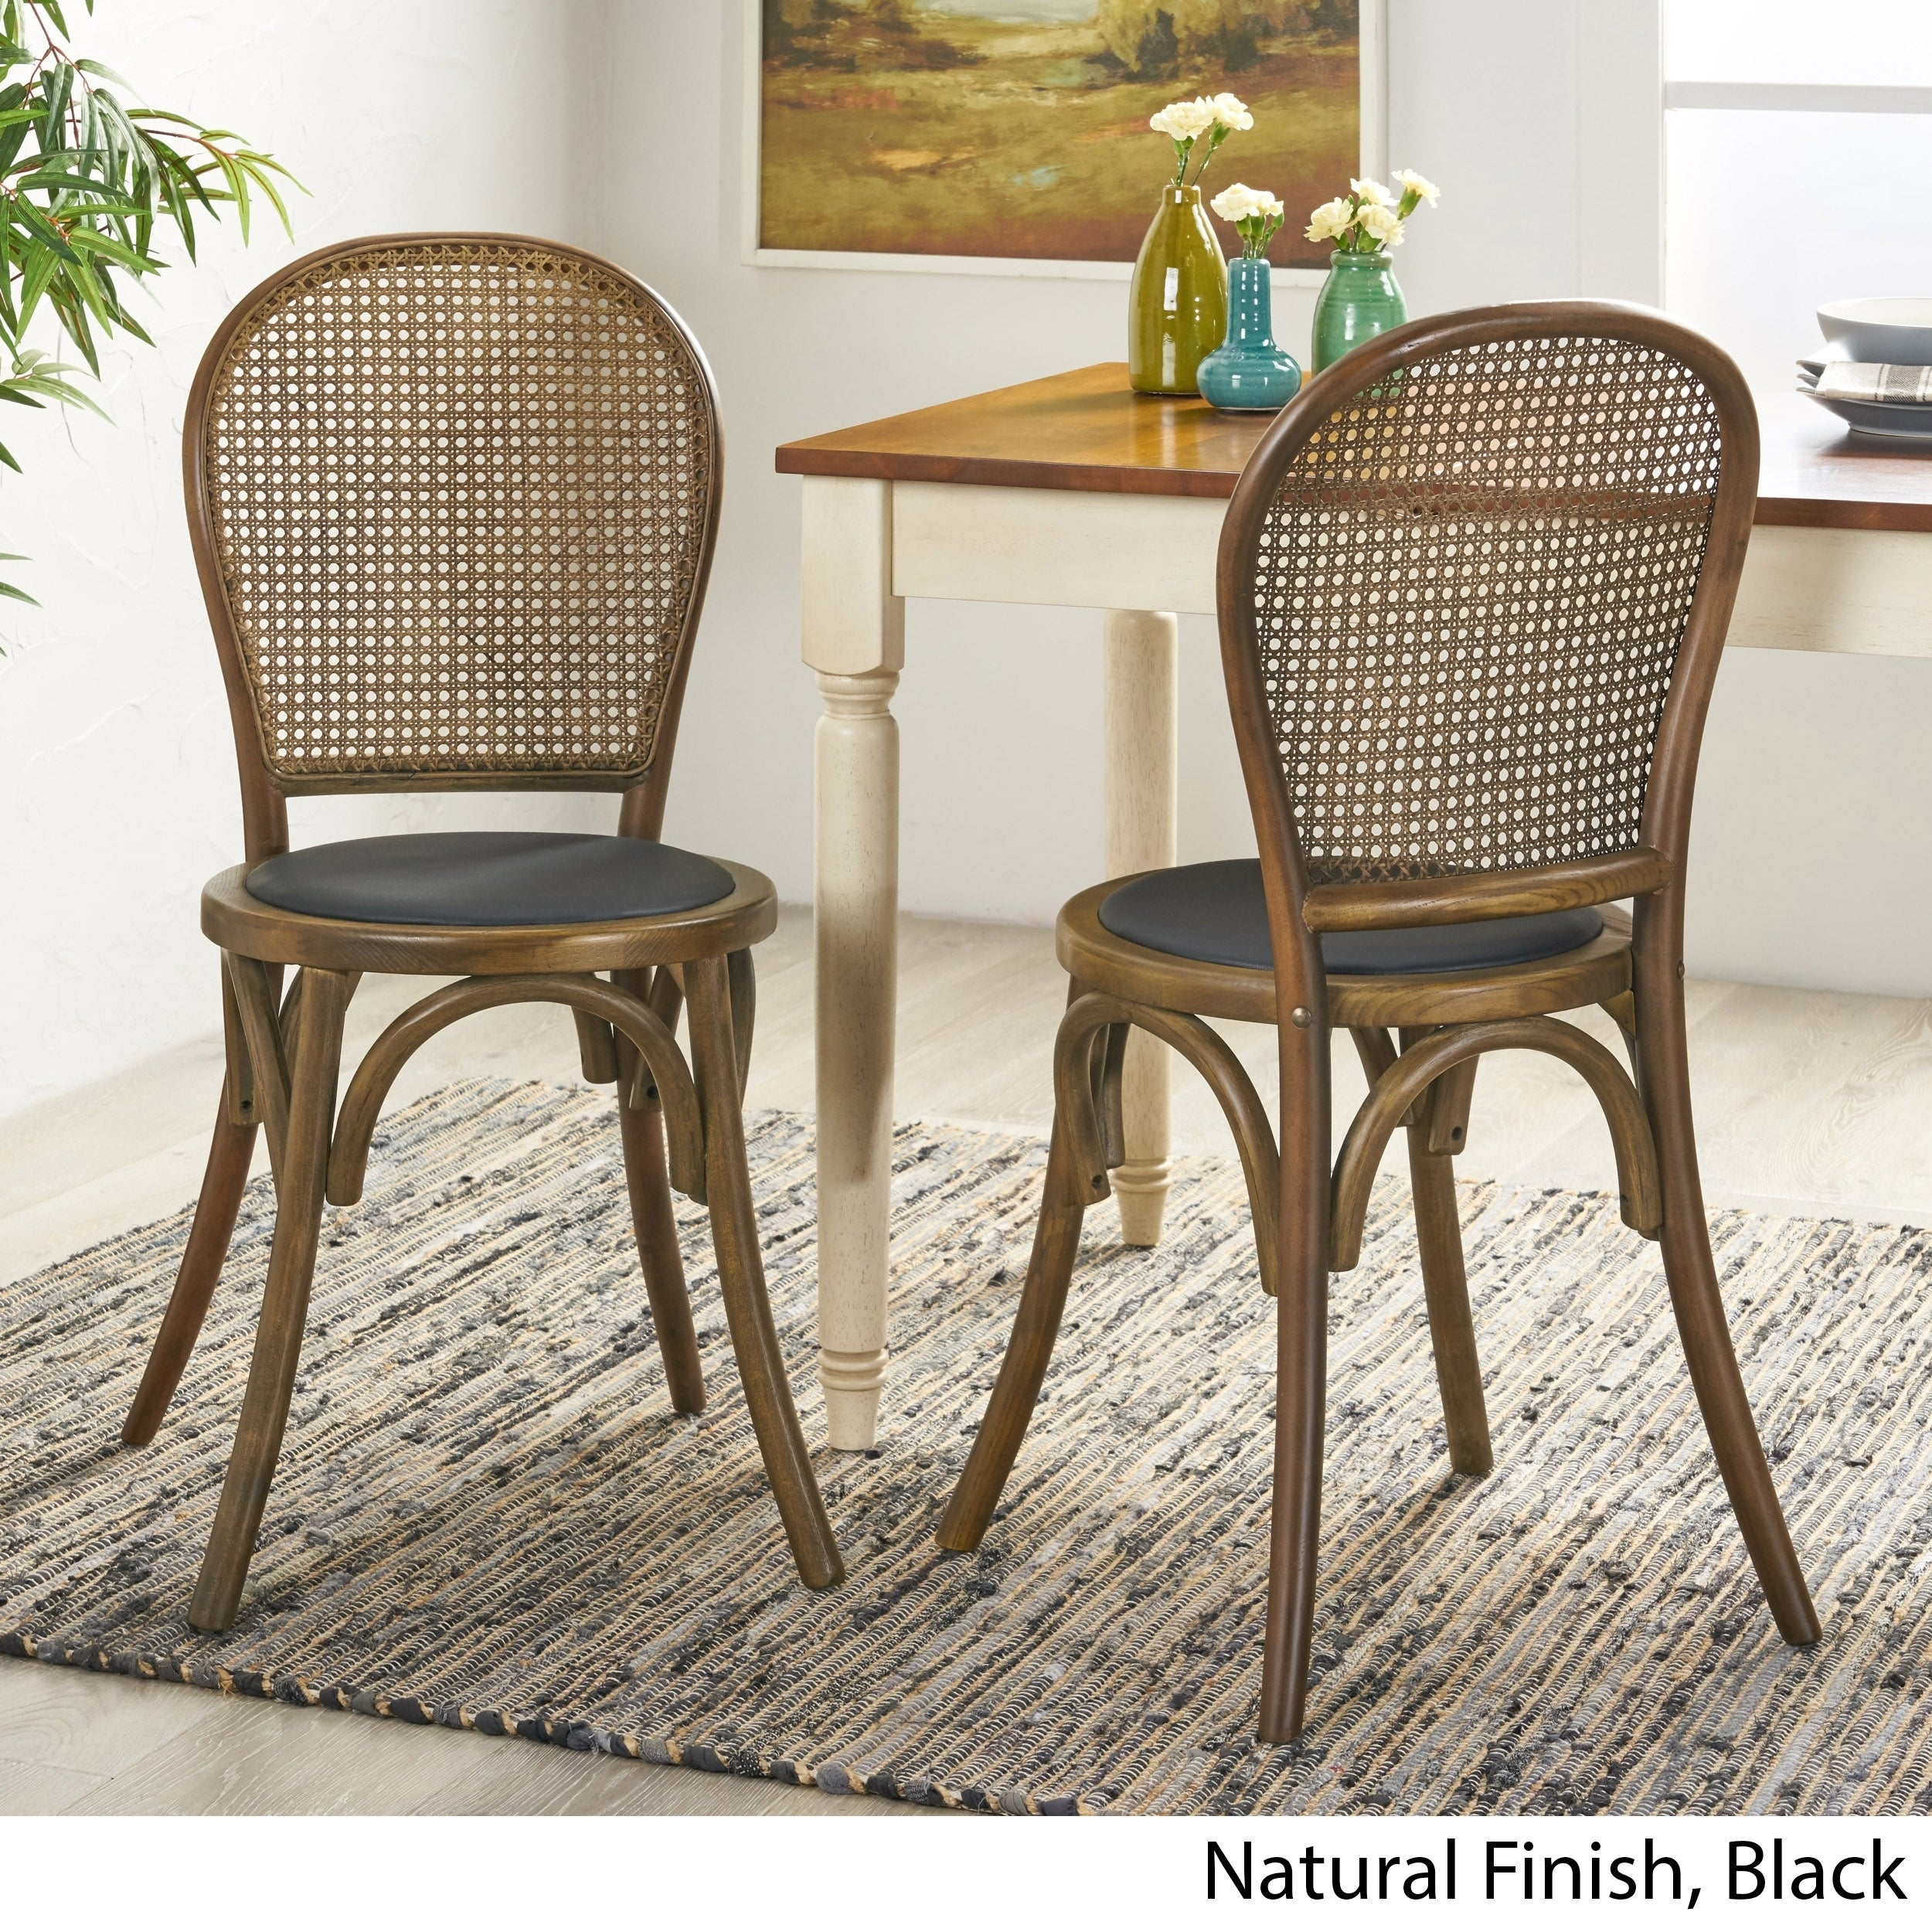 Chisum Beech Wood And Rattan Dining Chair With Faux Leather Cushion Set Of 2 By Christopher Knight Home On Sale Overstock 29737716 Black Black